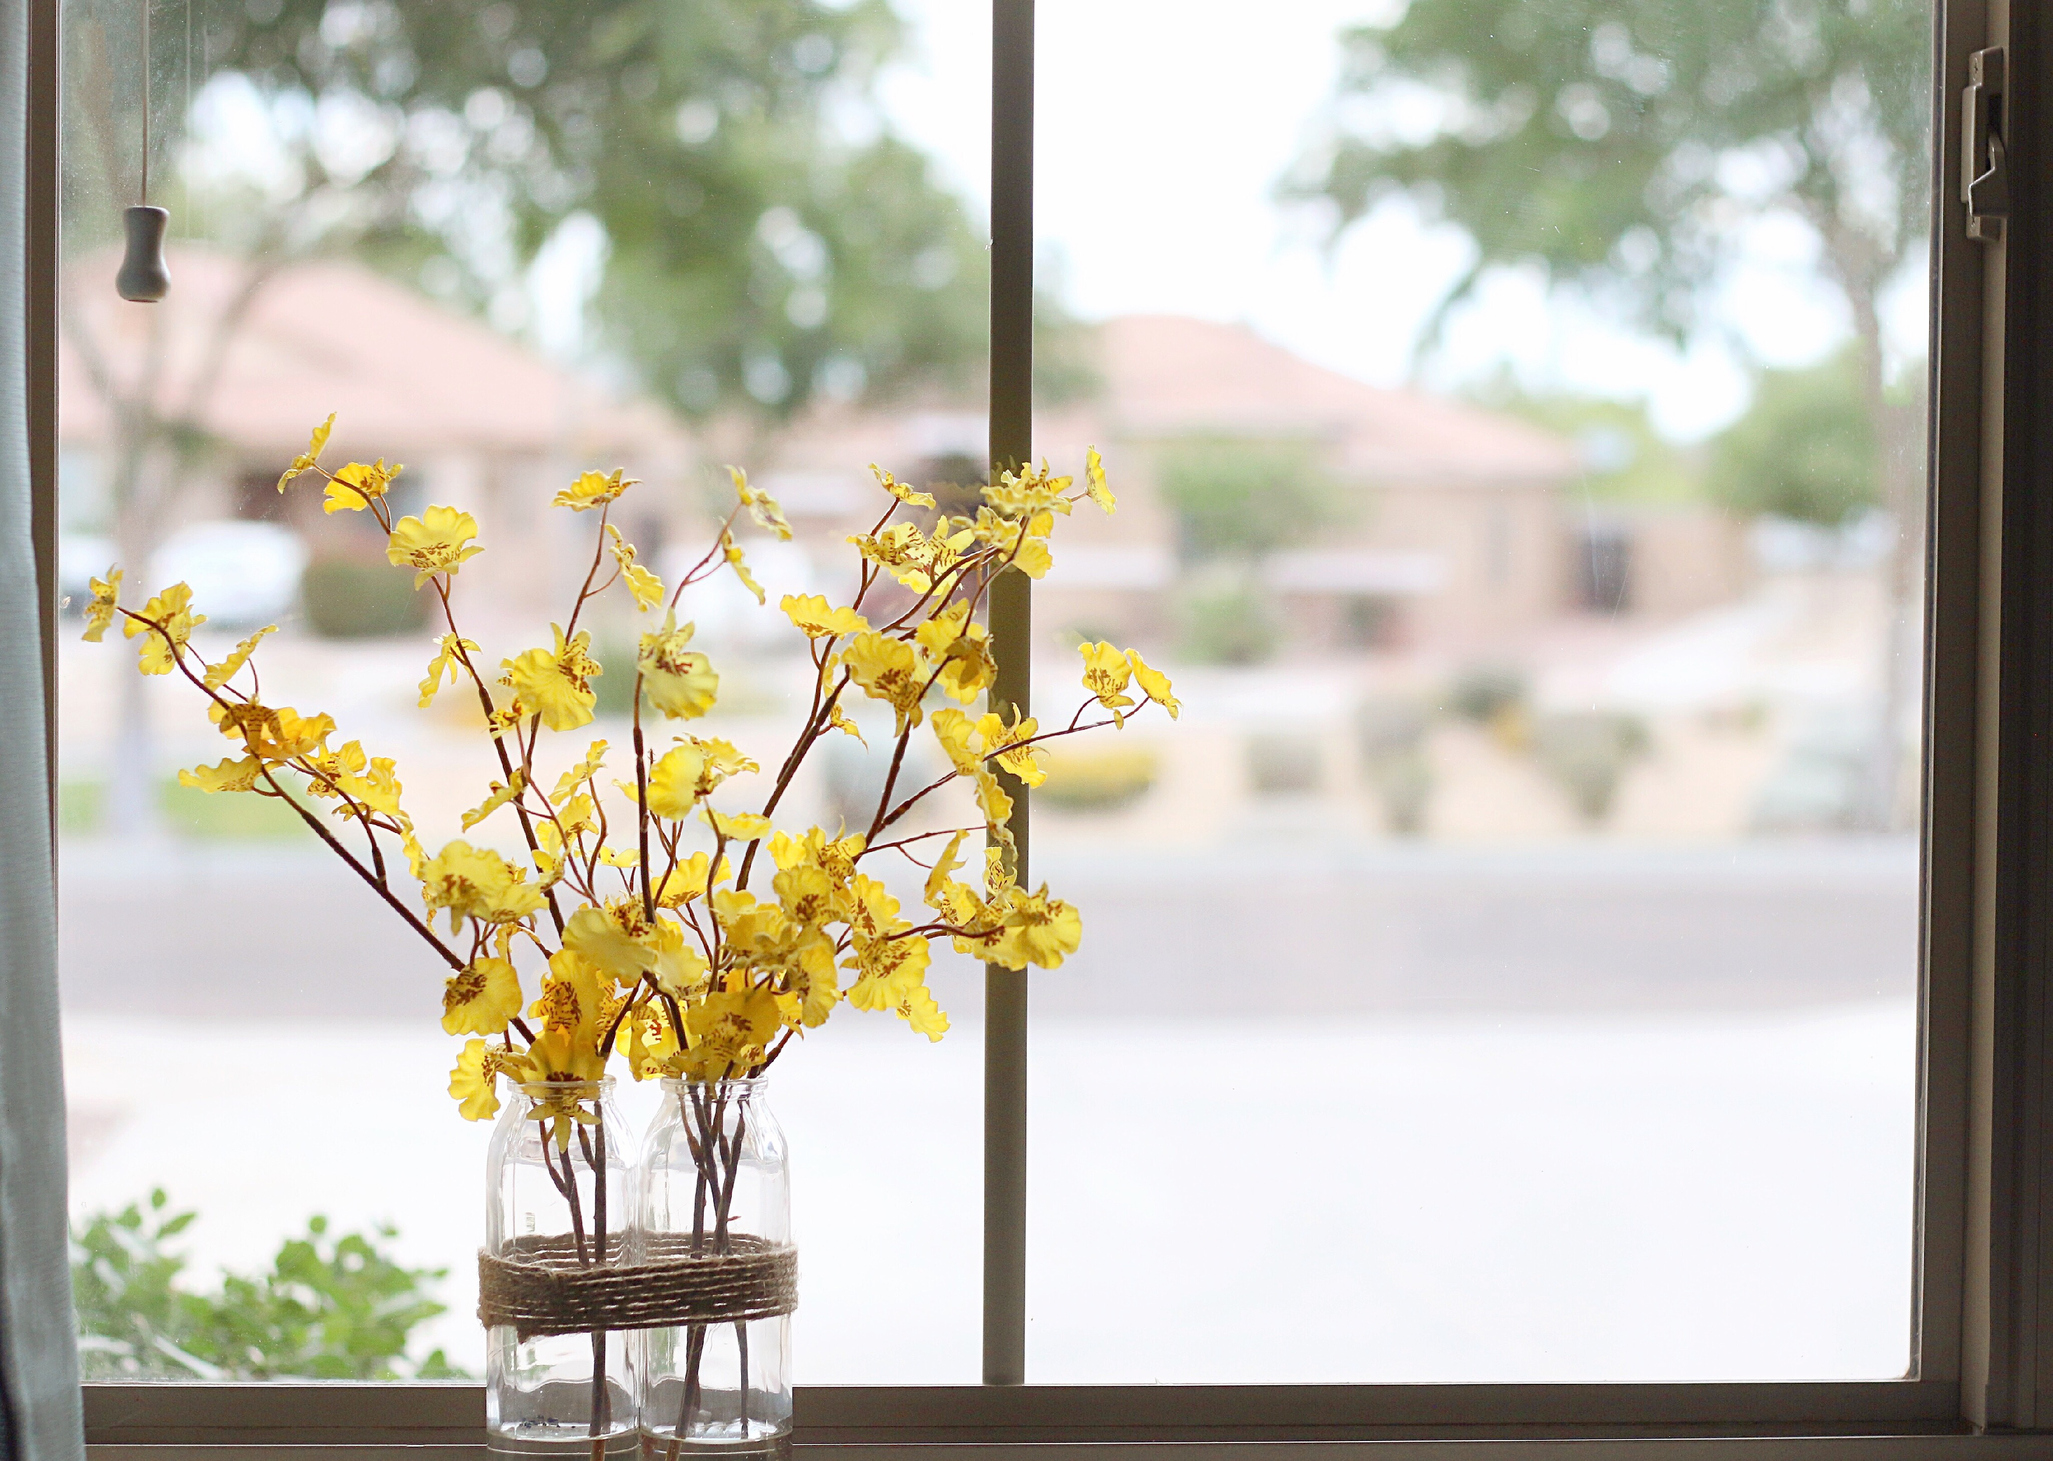 window sill with vase of spring flowers